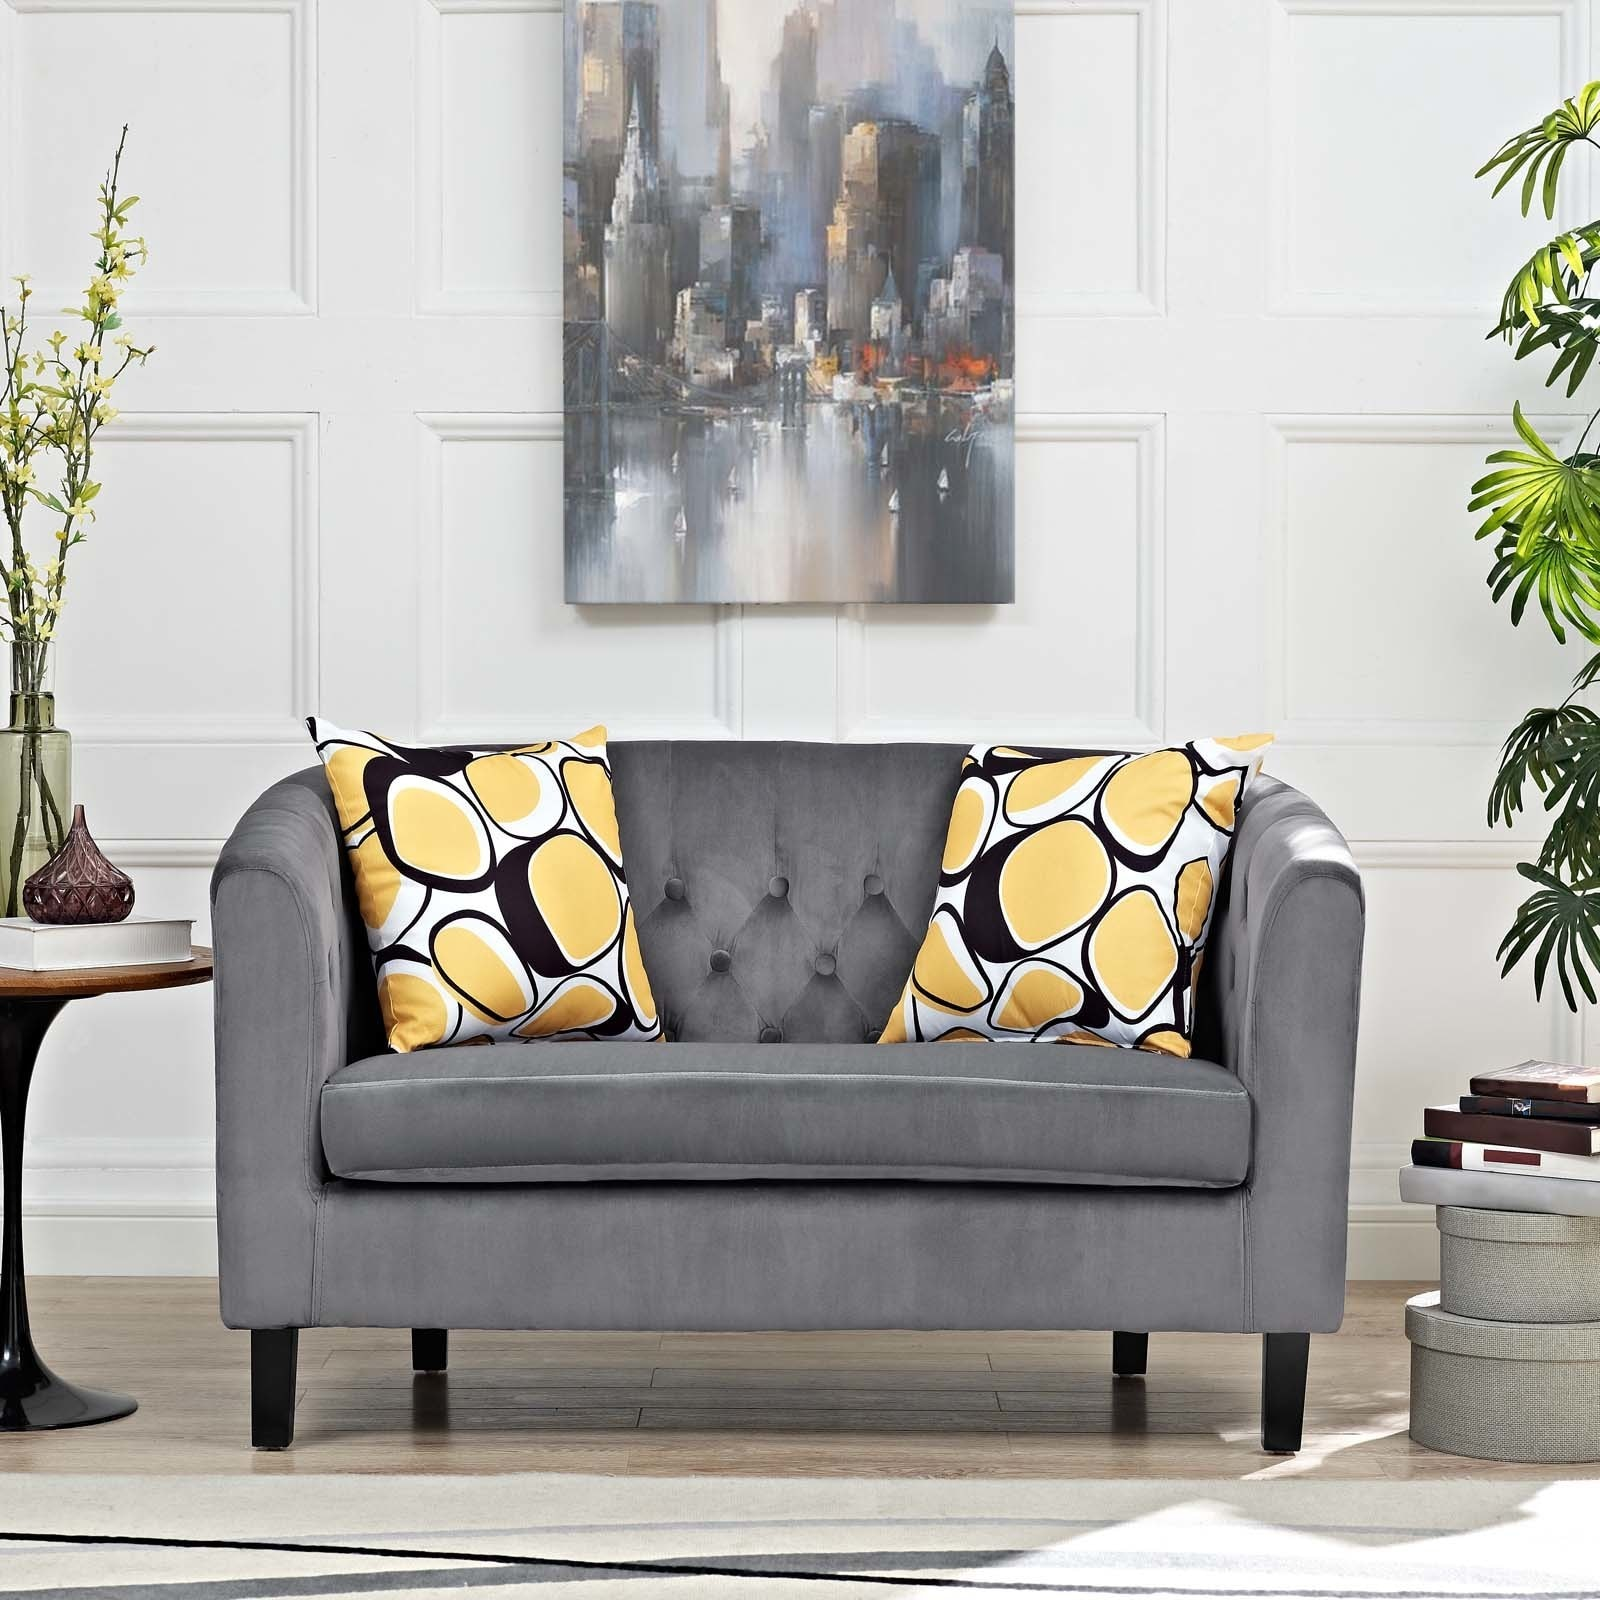 loveseat chaise lounge sale aubergine sofa room complete for mini living plum velvet your decor furniture grey warm and with sectional couches to purple